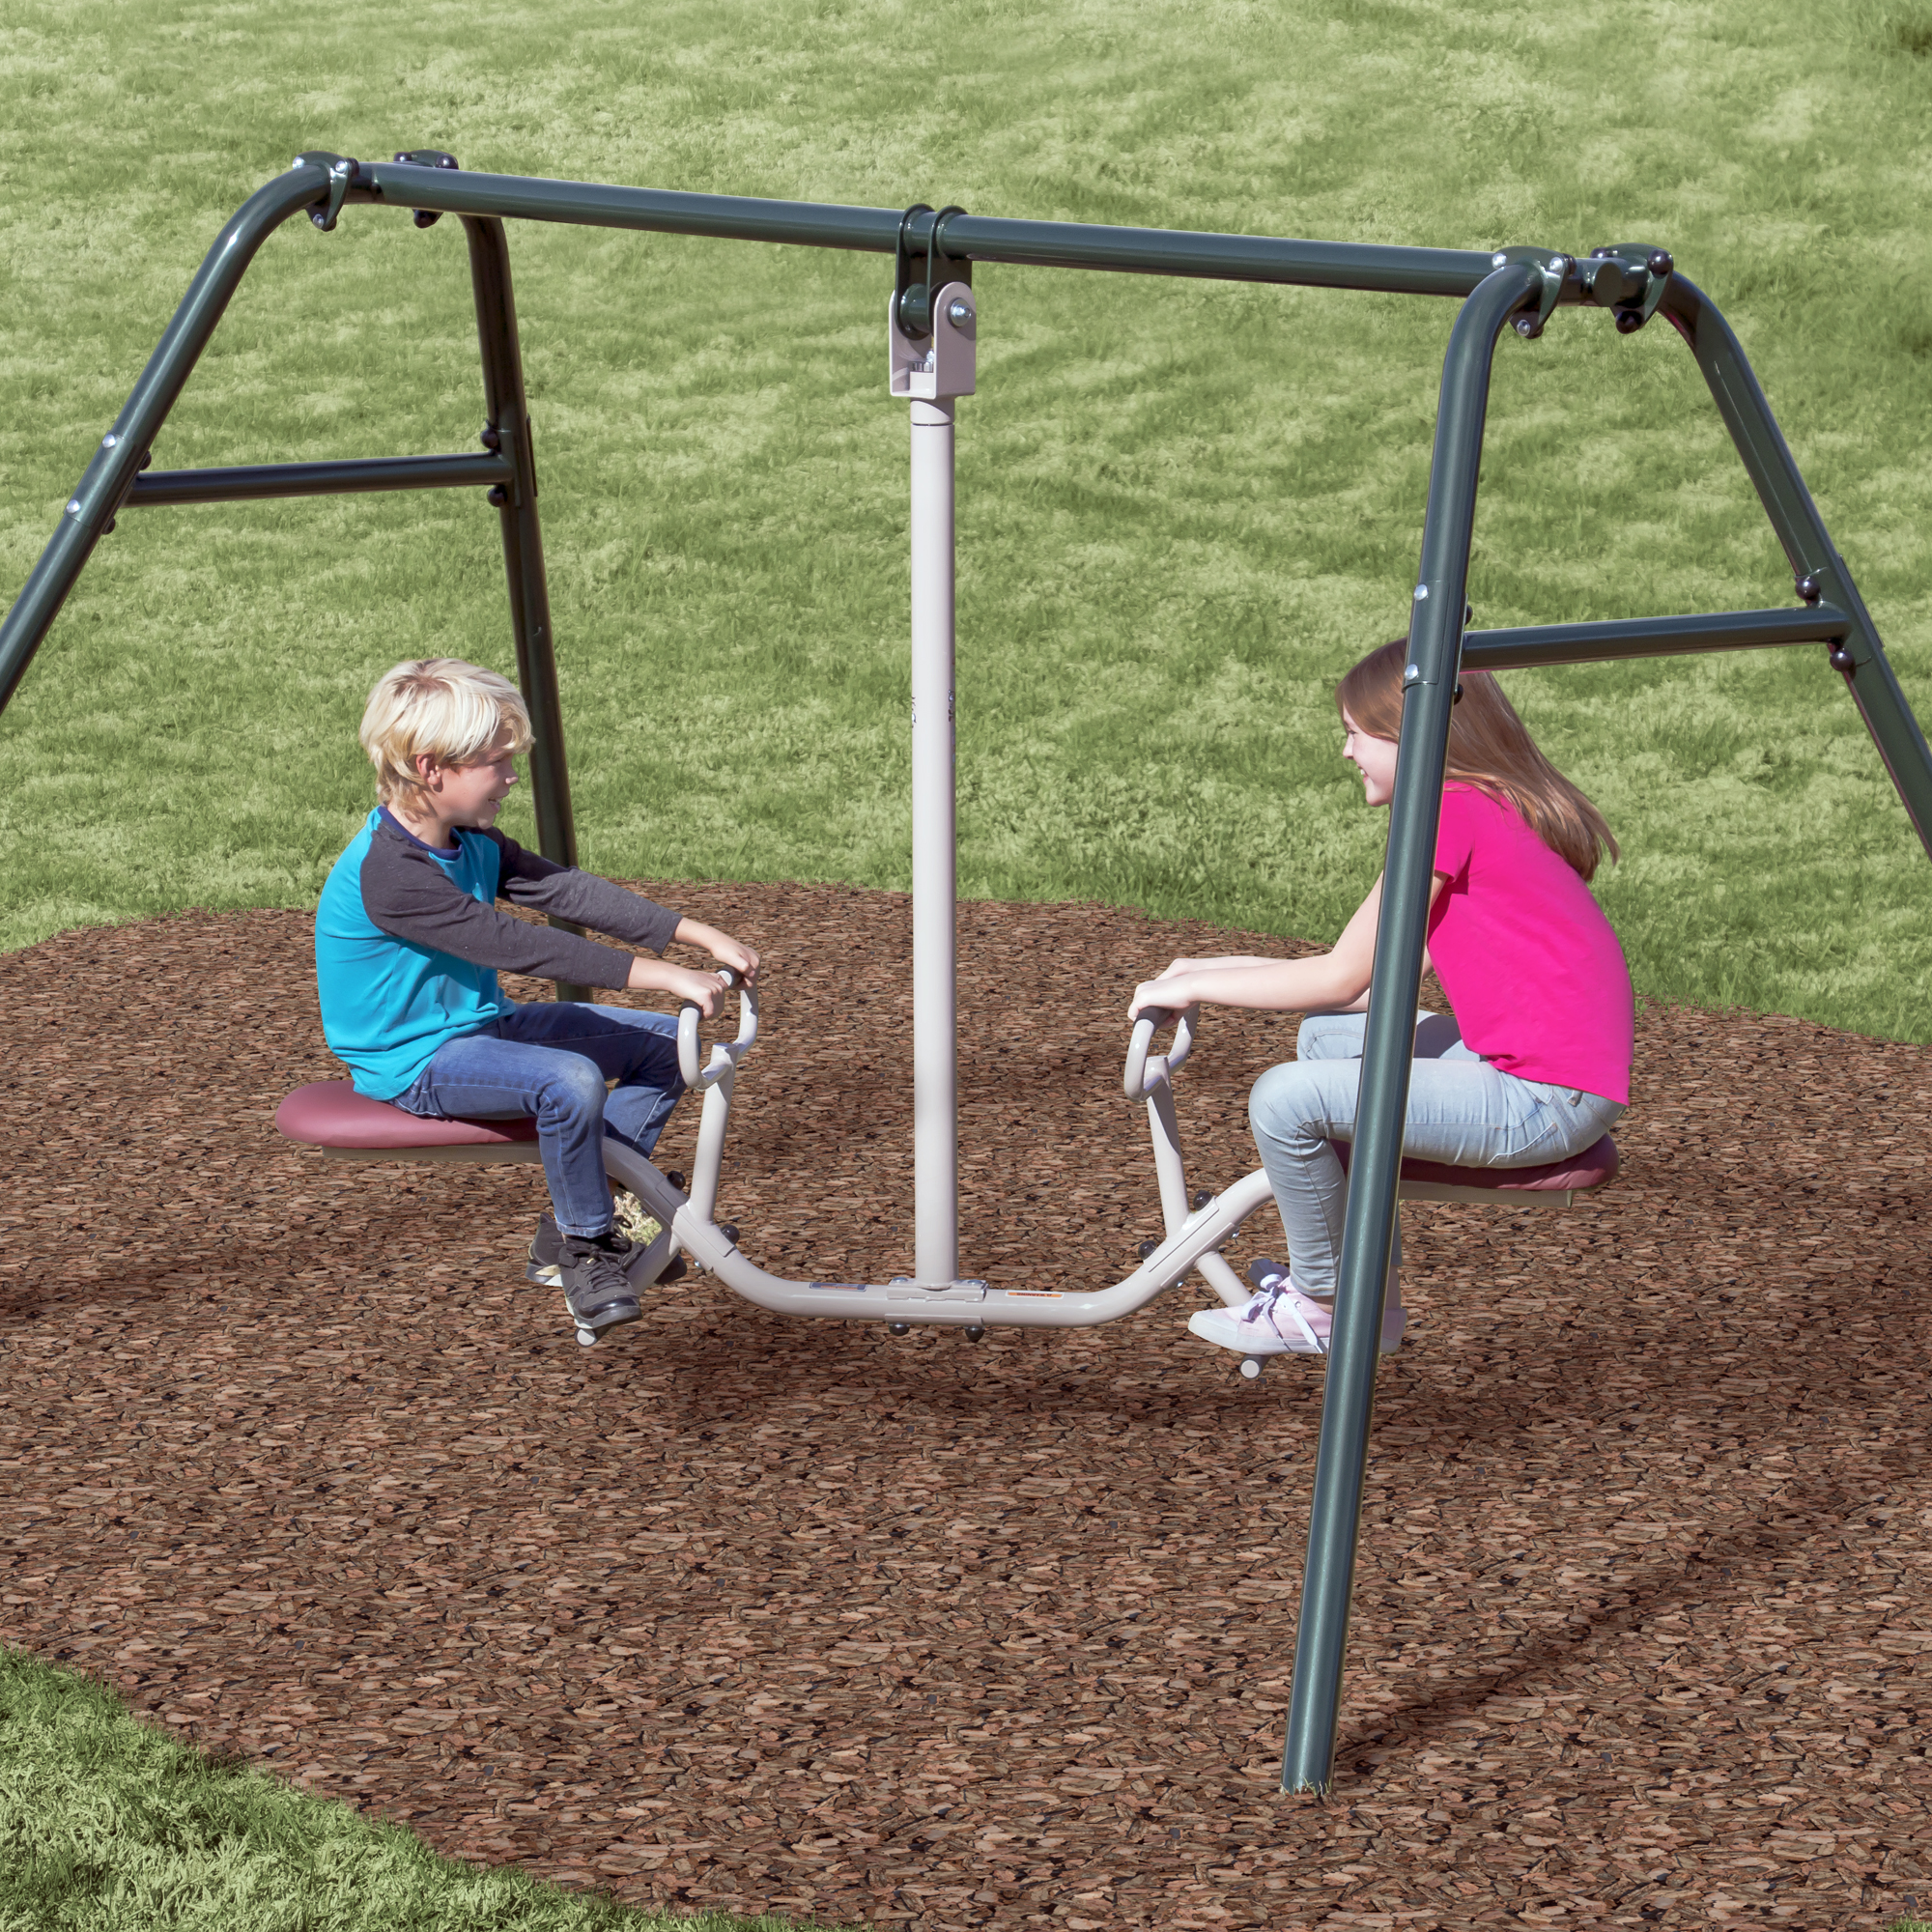 Gym Dandy Tilt-A-Swing Teeter Totter and Seesaw